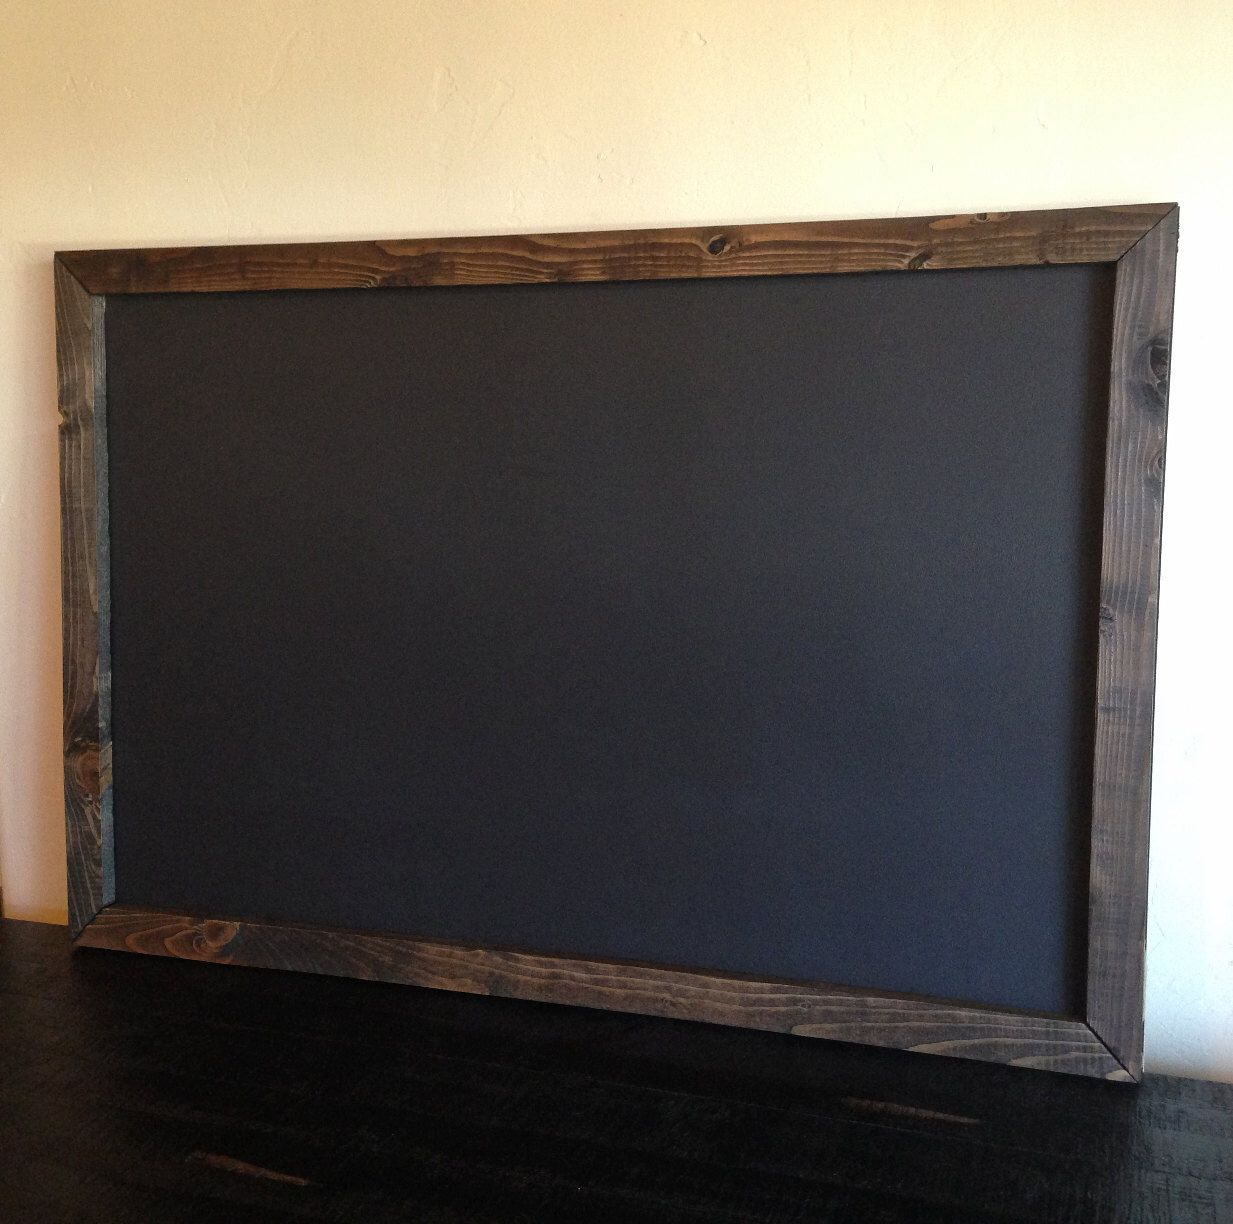 large chalkboard x rustic reclaimed wood rustic wedding menu  - hand crafted chalkboard with a rustic frame made of hand selected reclaimedwood the wood frame has been cut sanded stained and assembled by hand